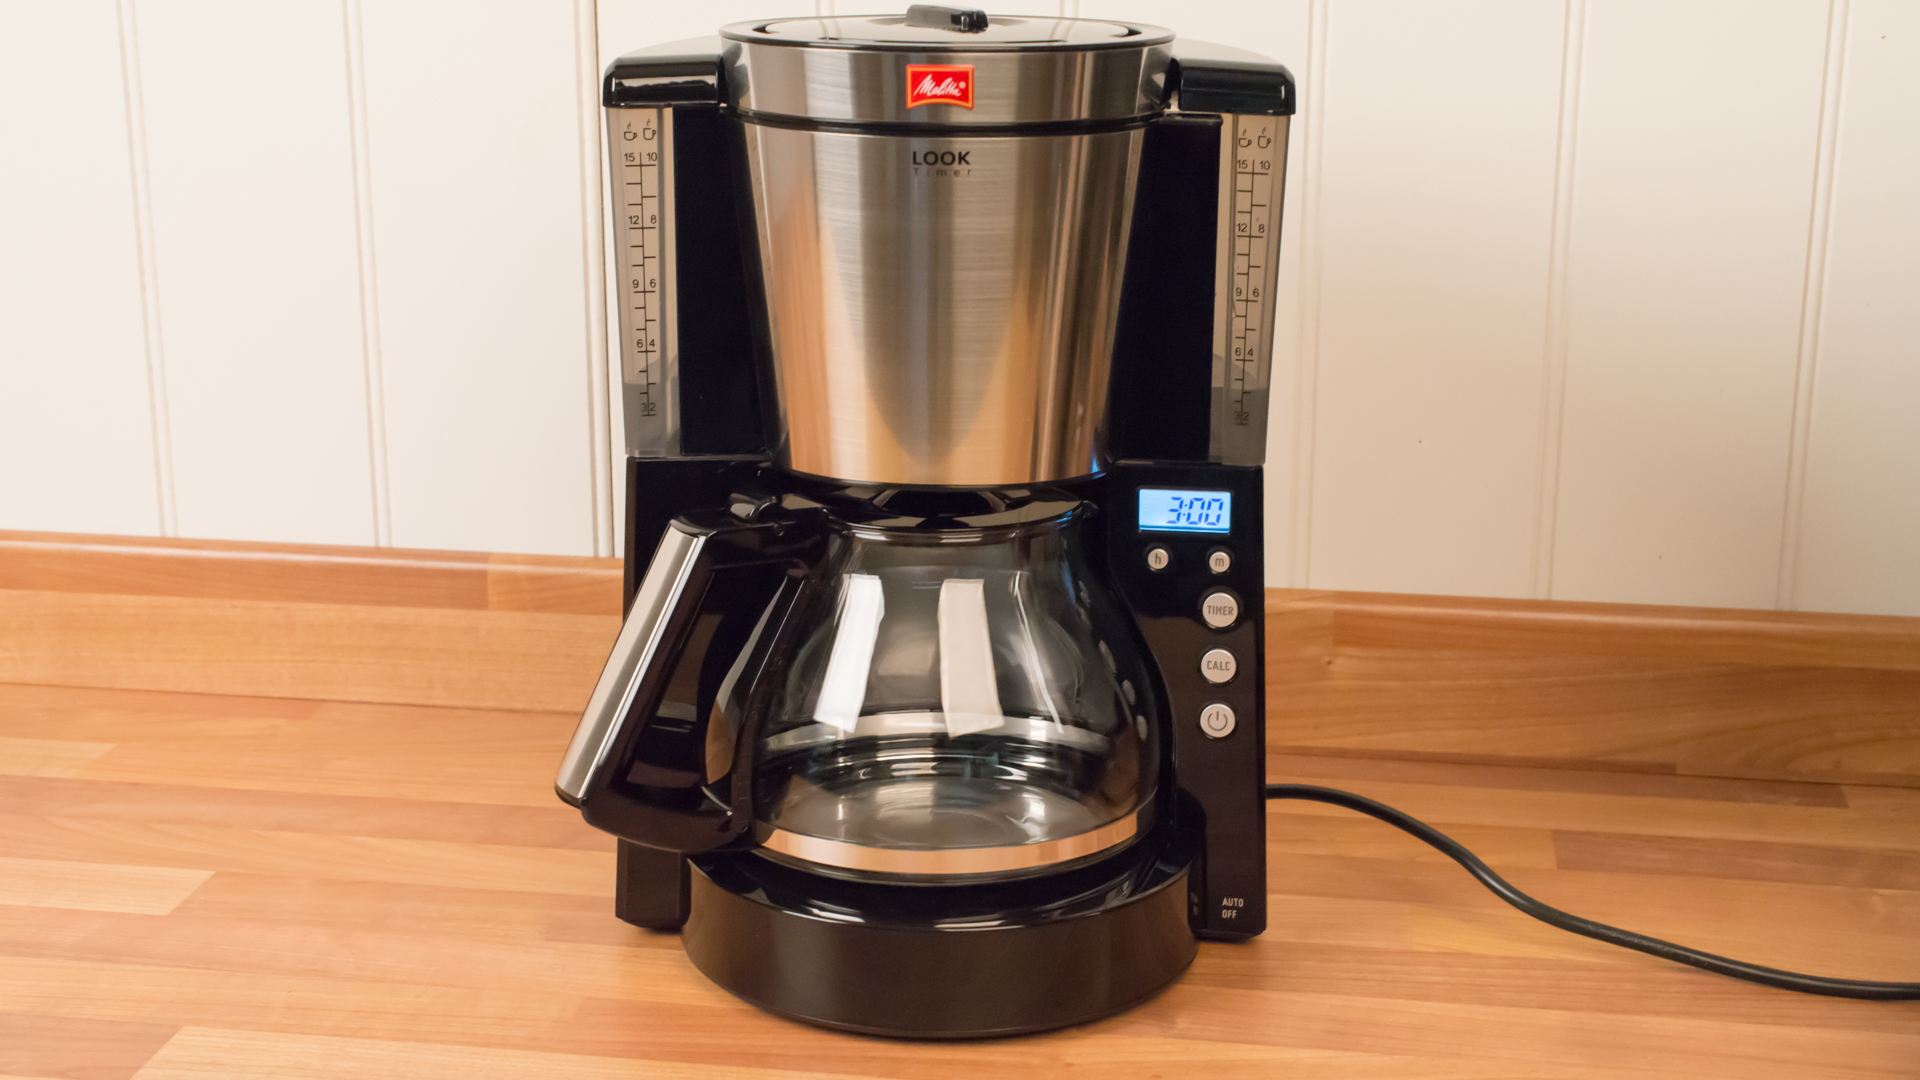 Good Coffee Makers Home Use : Melitta Look Timer review Expert Reviews